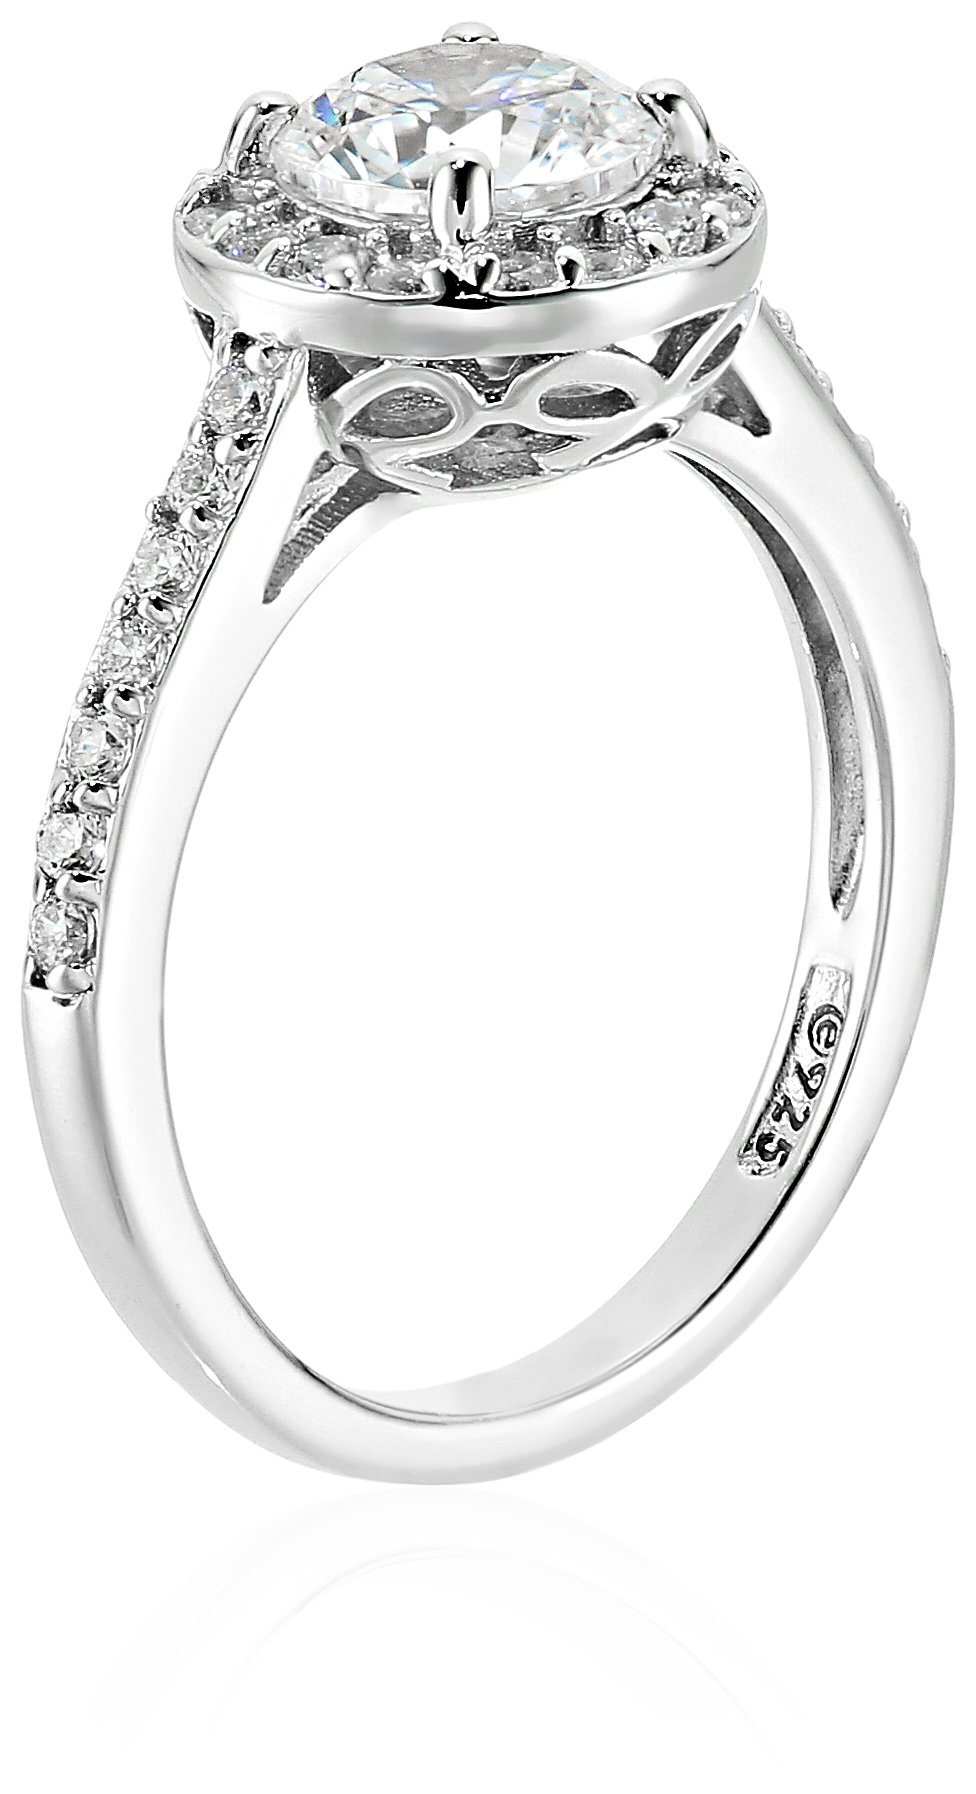 Platinum Plated Sterling Silver Wedding Ring set with Round Cut Swarovski Zirconia Centerpiece and Halo (1.5 cttw), Size 6 by Amazon Collection (Image #2)